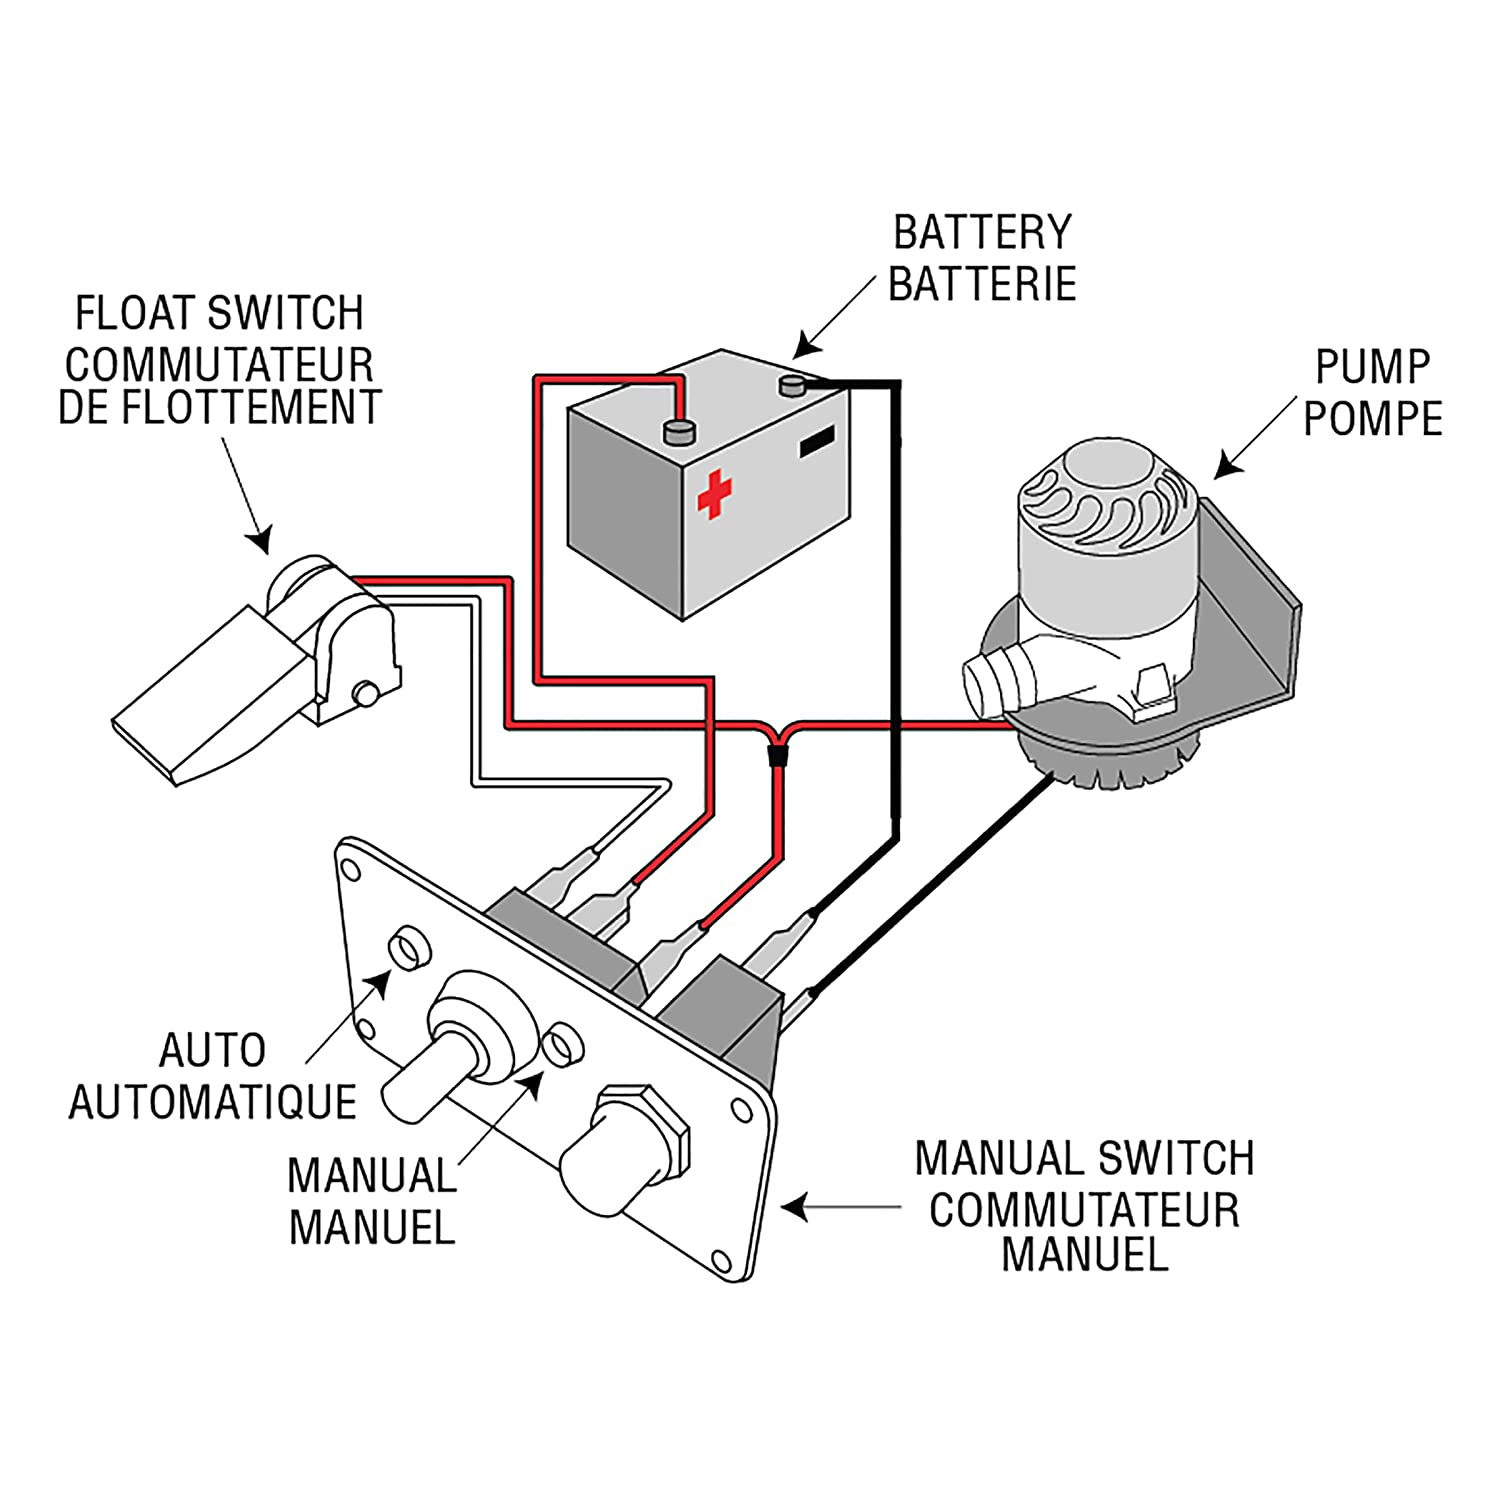 DIAGRAM] Auto Bilge Wiring Diagram FULL Version HD Quality Wiring ...